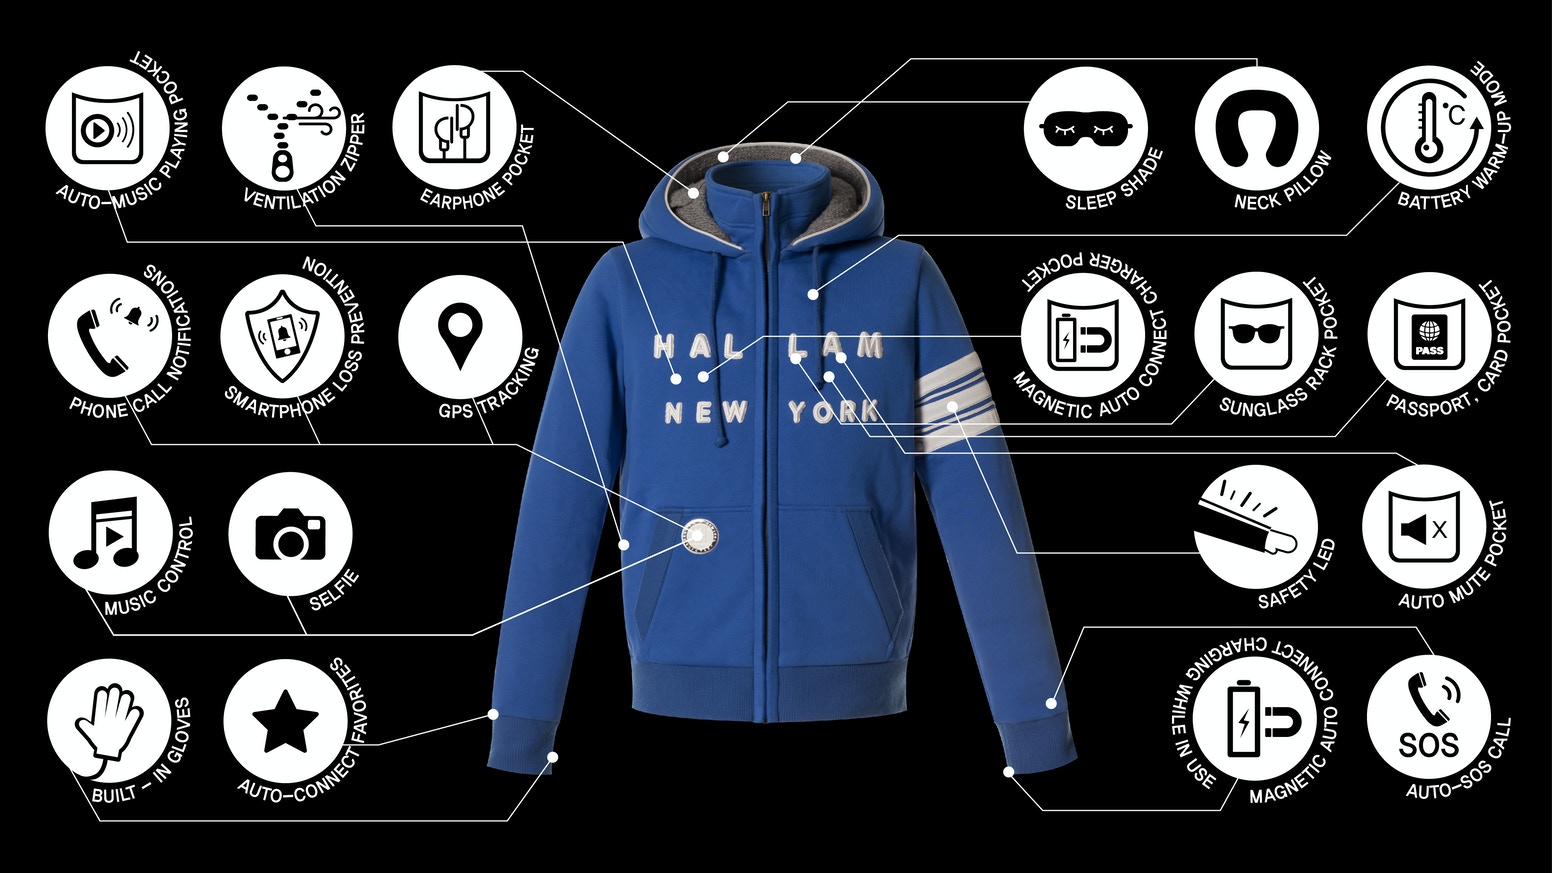 d98267c37 World's First SMART JACKET for iPhone & Android user// HALLAM NEW YORK//